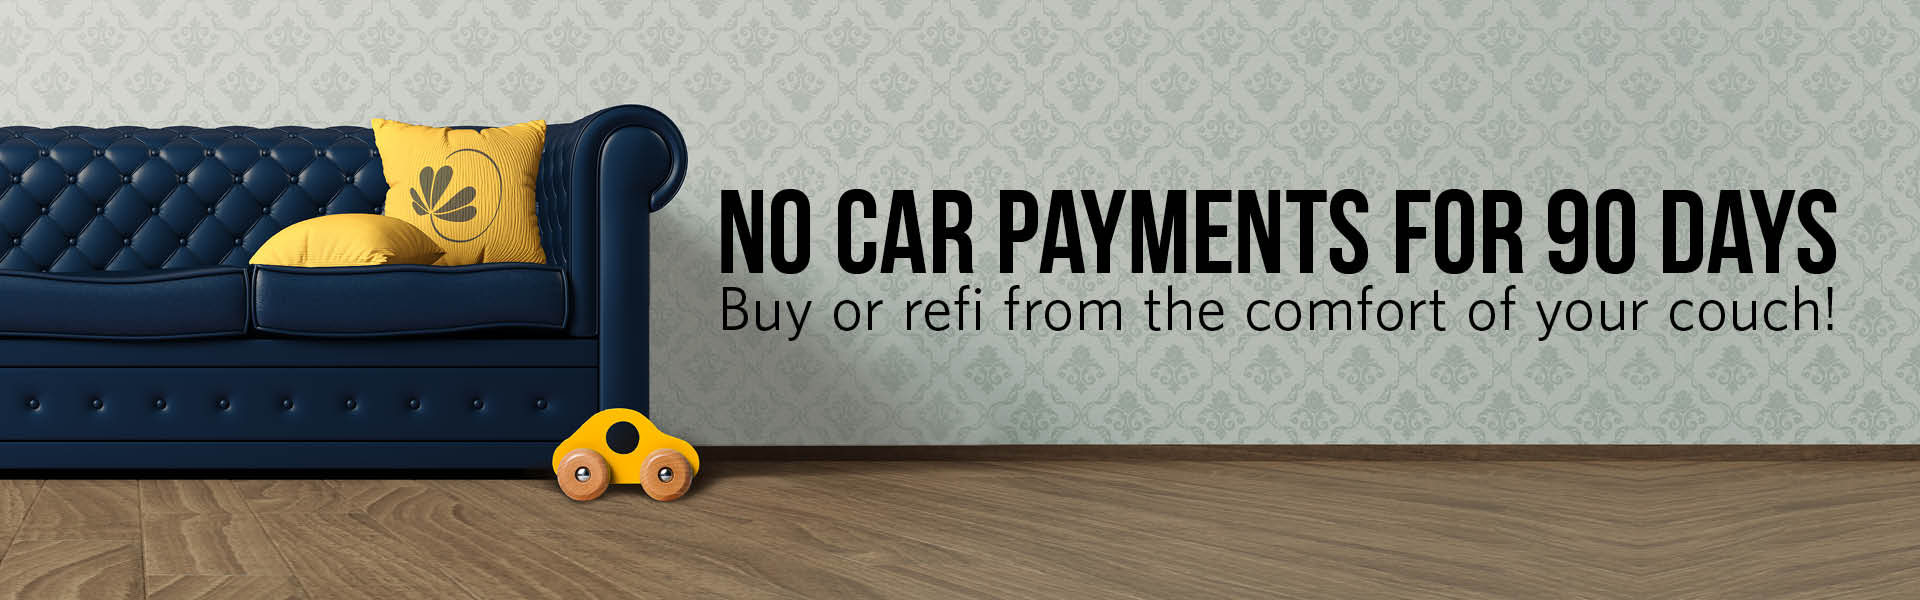 No car payments for 90 days. buy or refi from the comfort of your couch